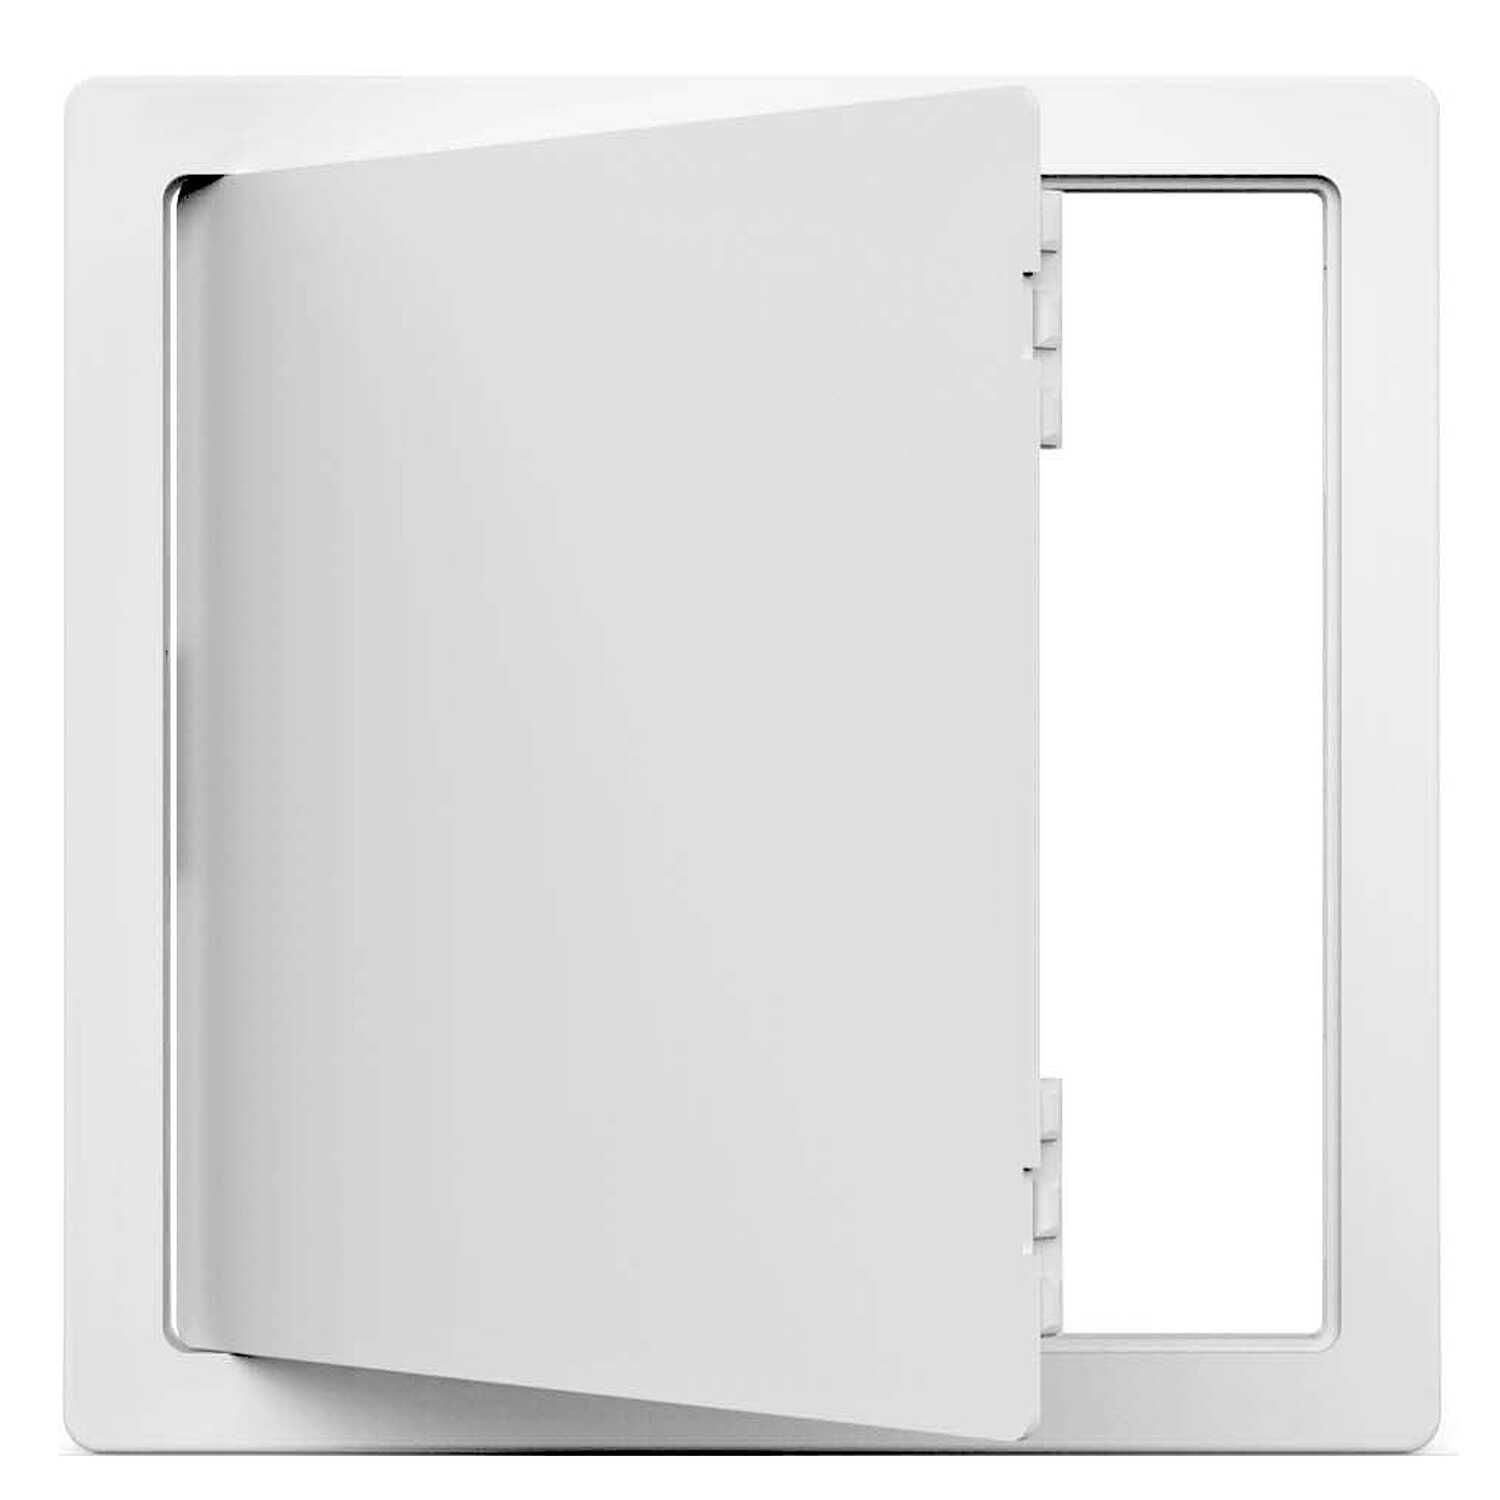 Acudor  PA-3000  Access Panel  18 in. H x 18 in. W